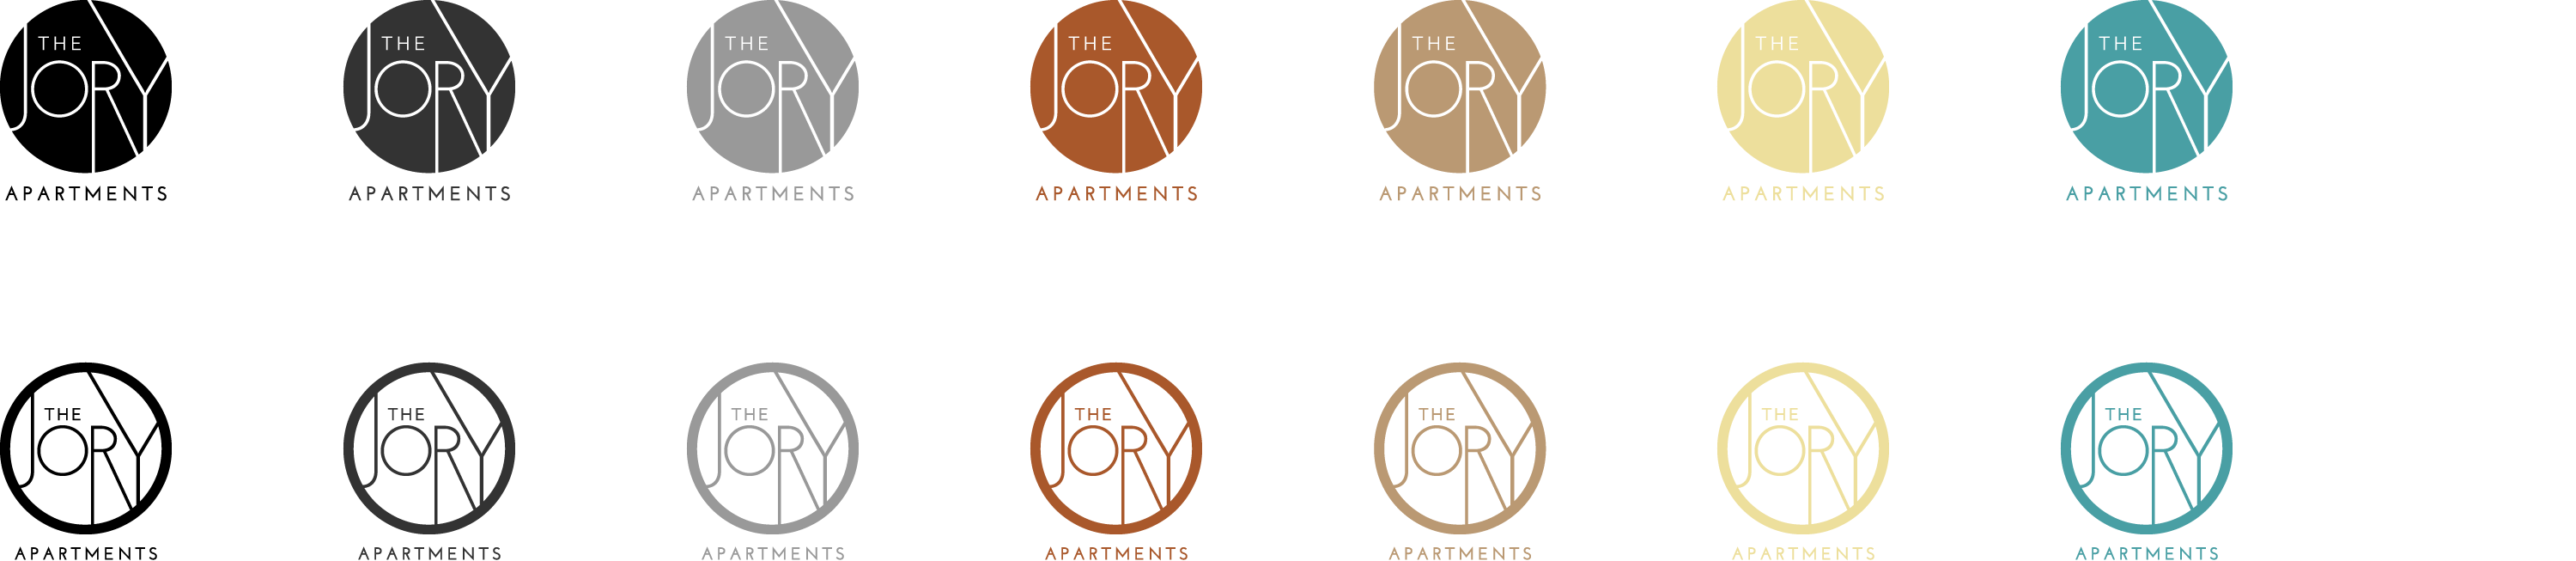 Need logo for new apartment community with classic, but modern taste